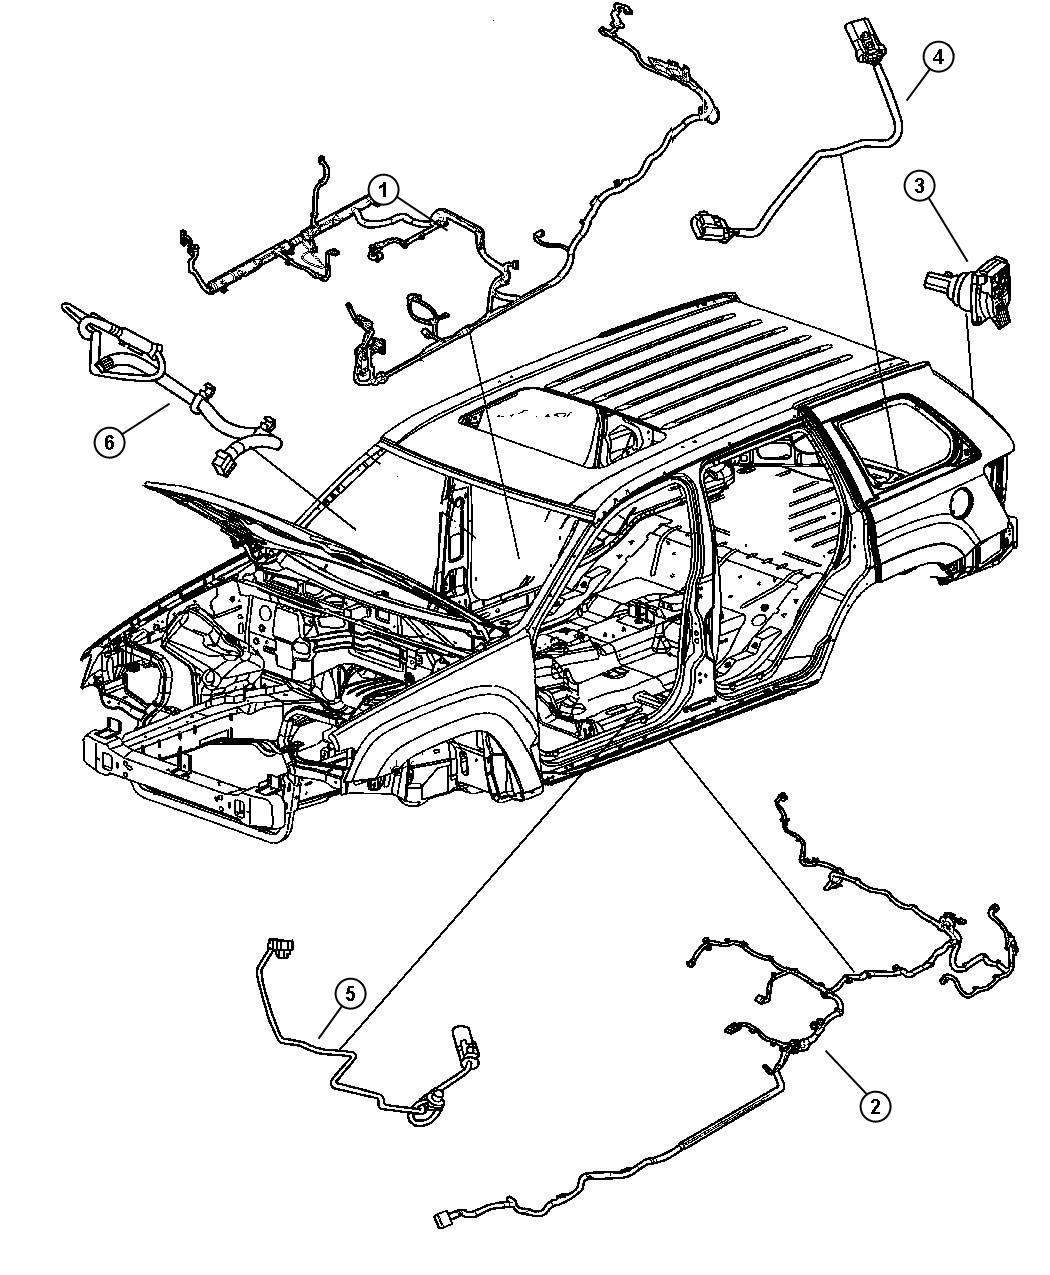 1997 Jeep Cherokee Body Wiring Diagram